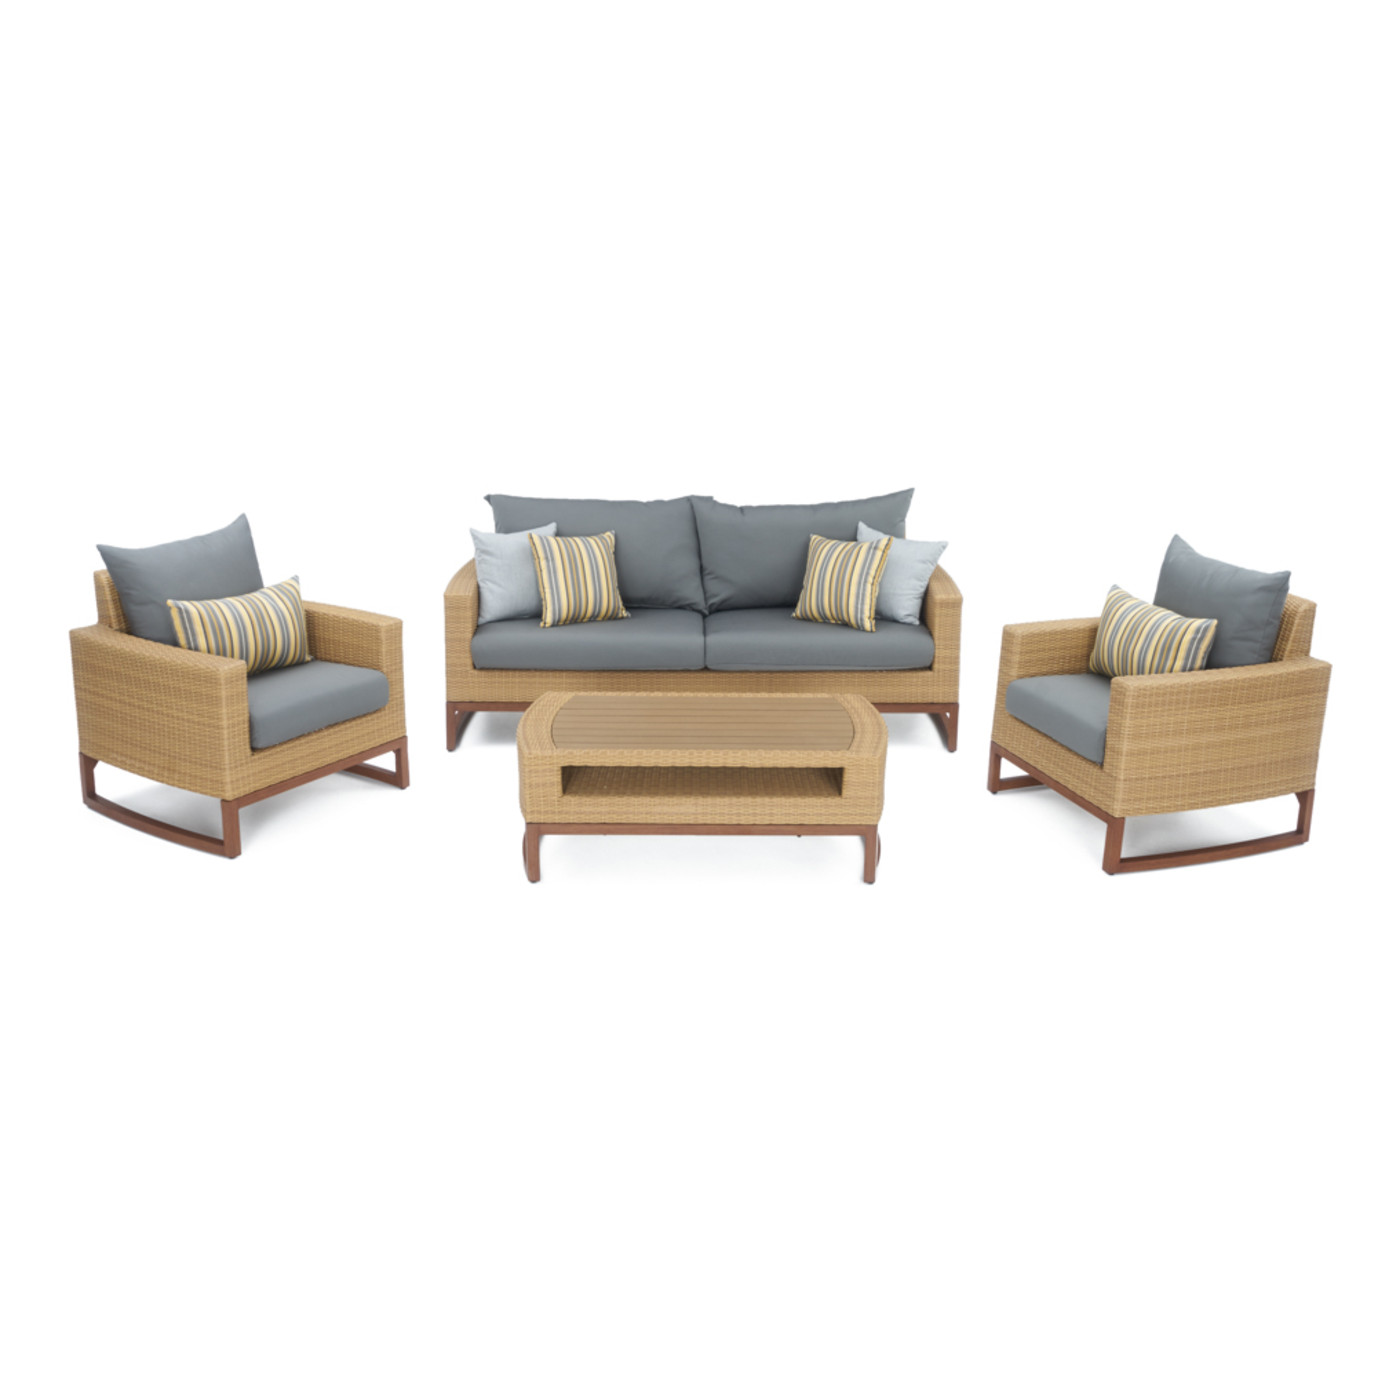 Mili 4pc Seating Set Charcoal Grey Rst Brands